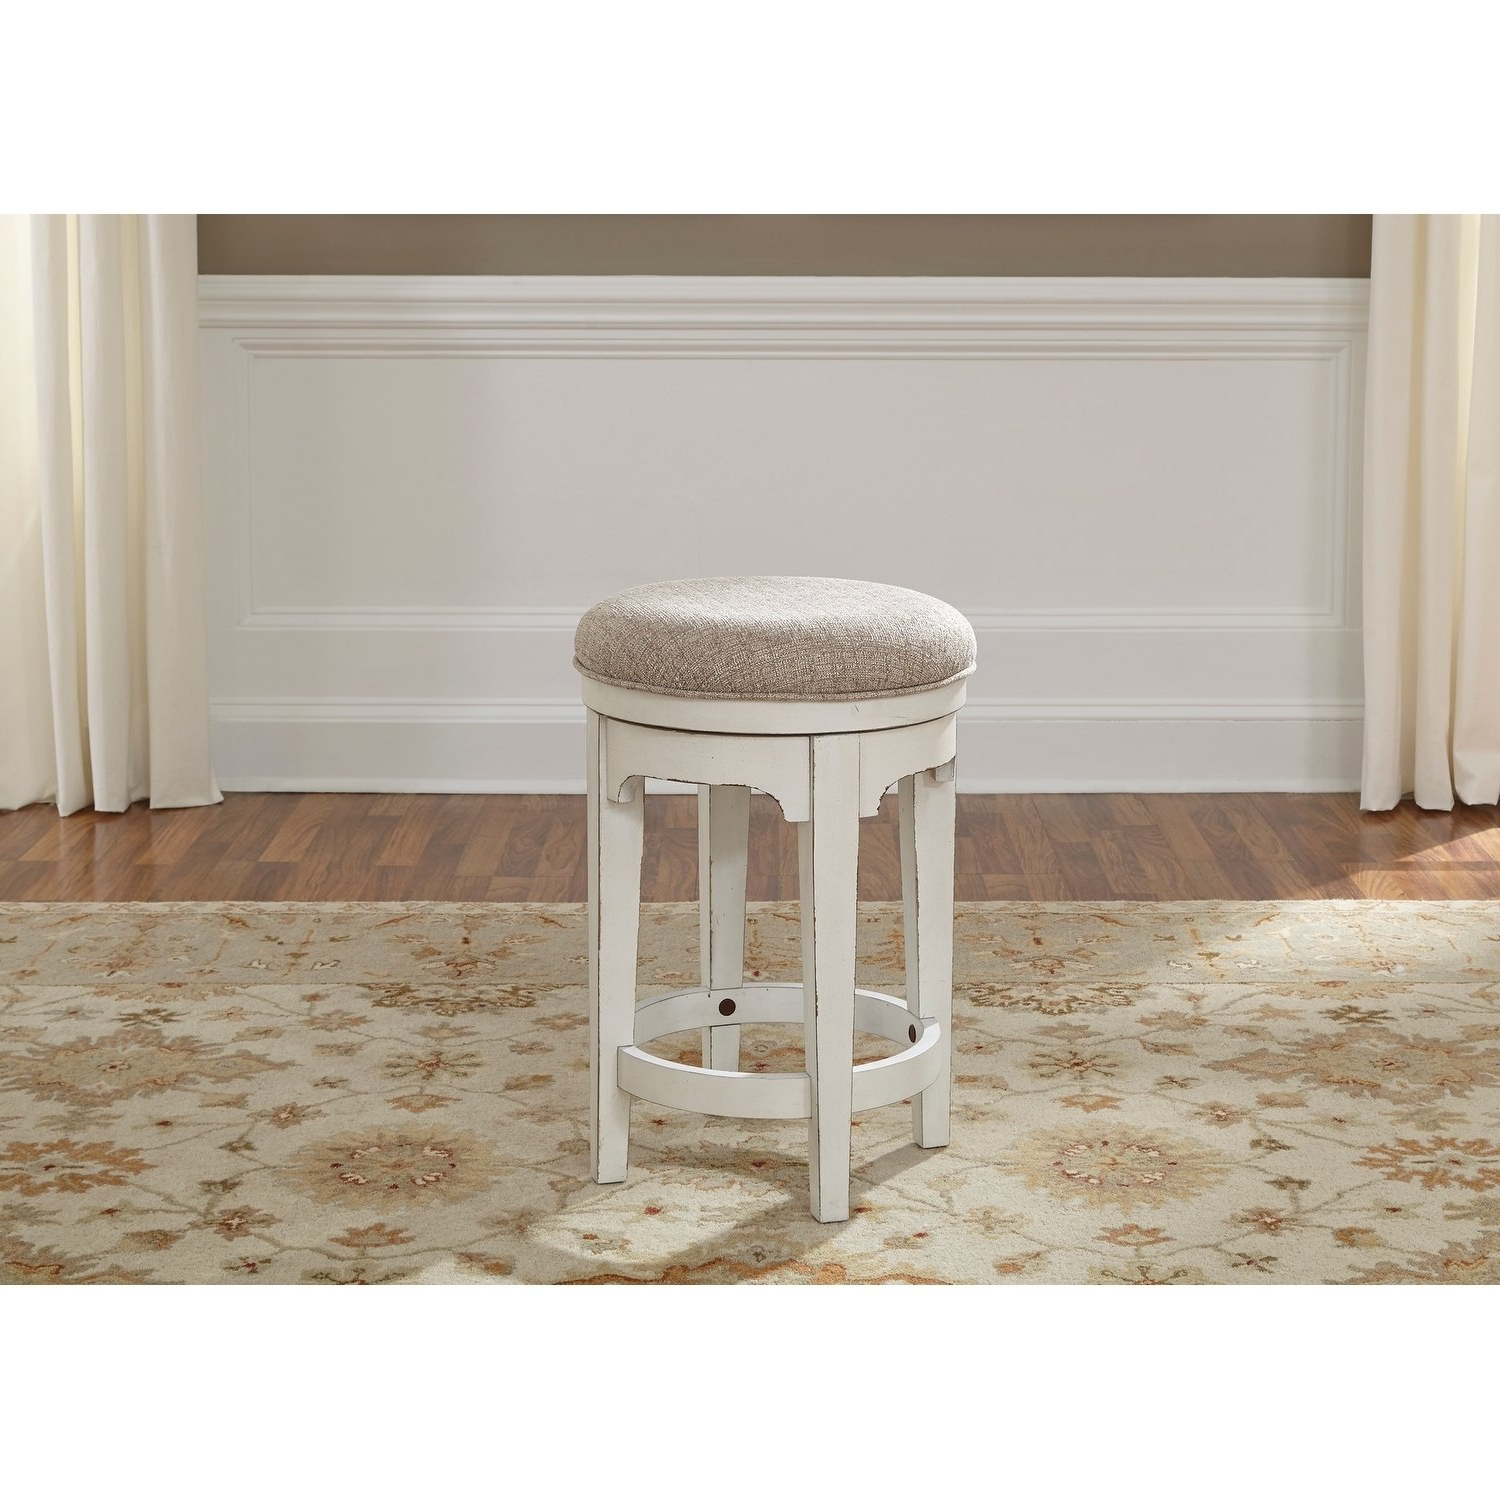 Most Recent Shop Magnolia Manor Antique White Console Swivel Stool – Free With Regard To Manor Grey Swivel Chairs (View 9 of 20)